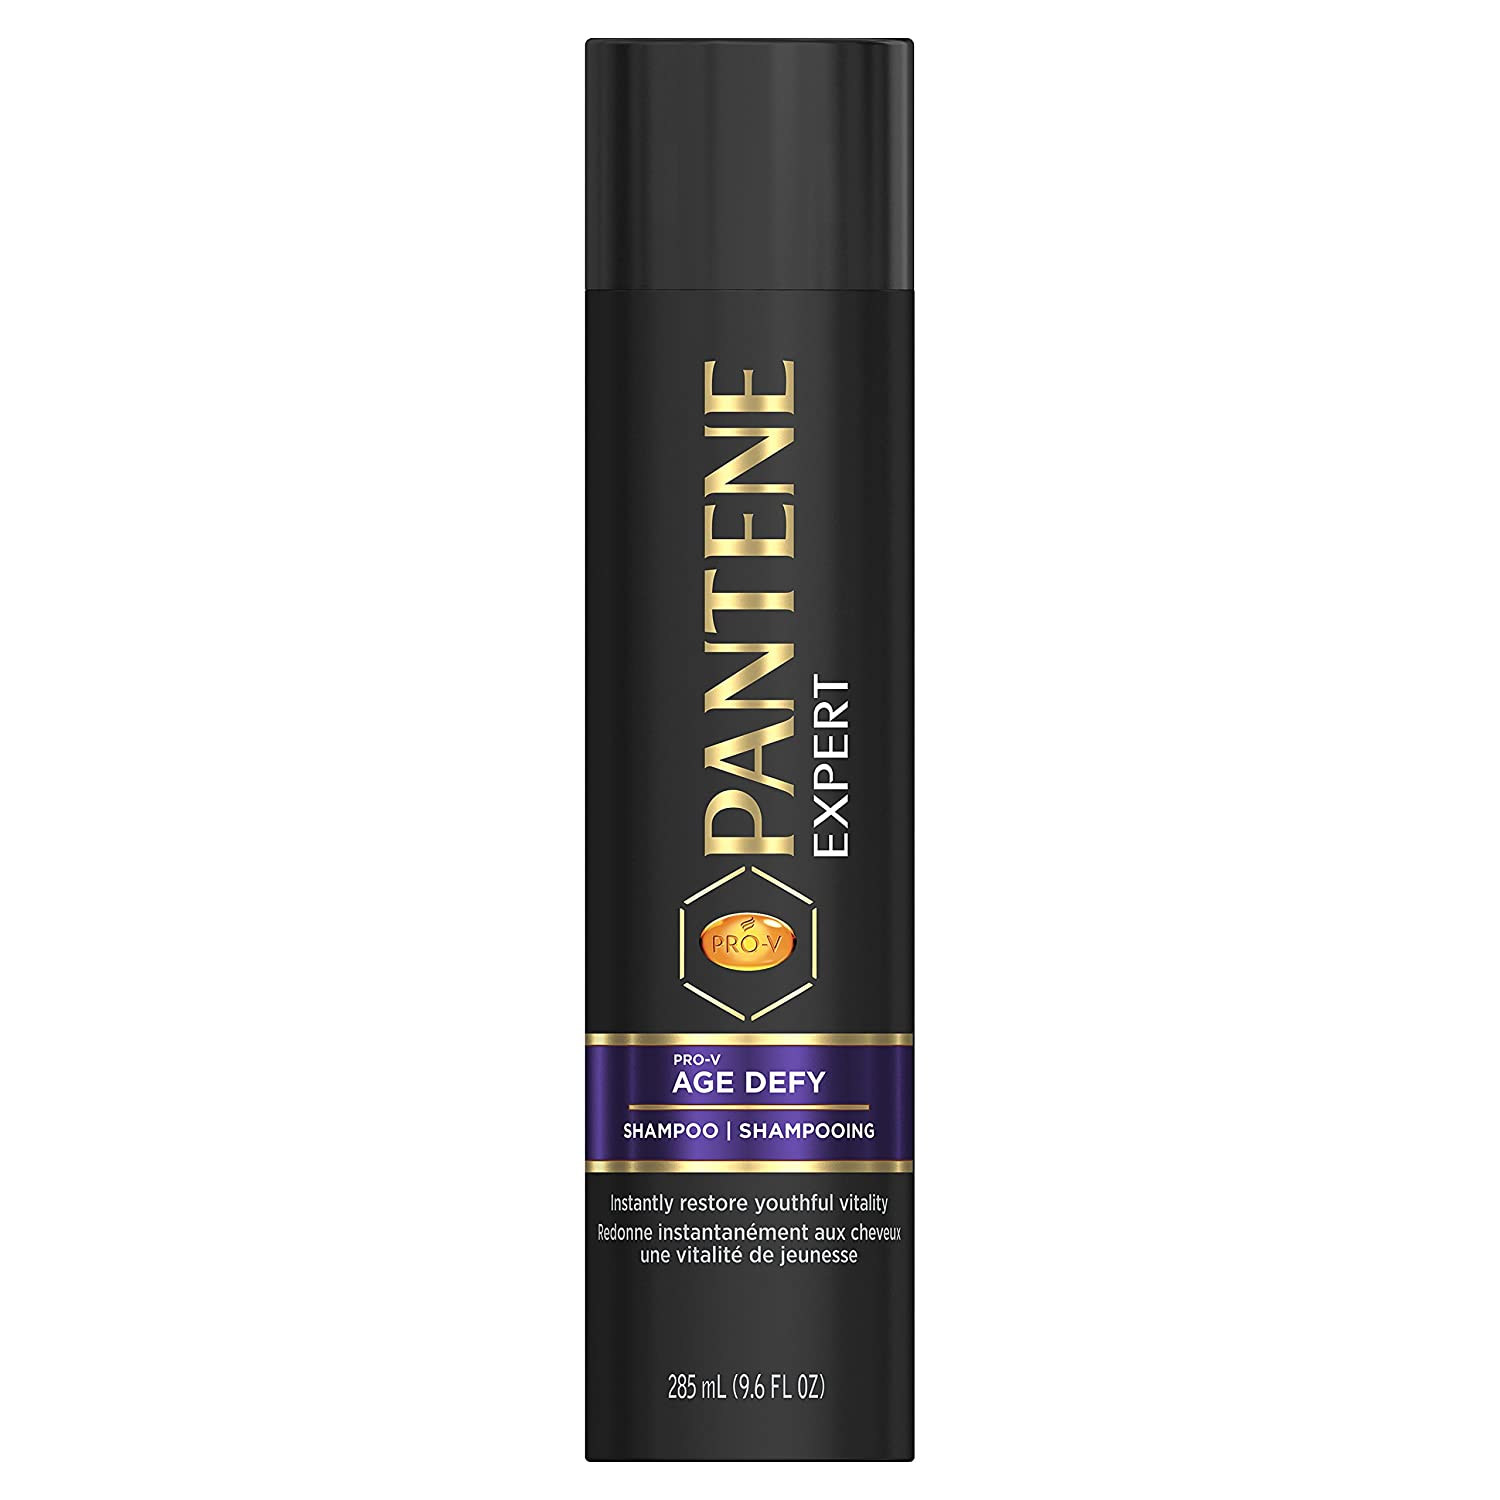 Pantene Expert Pro-V Age Defy Shampoo 285 mL-Packaging may vary